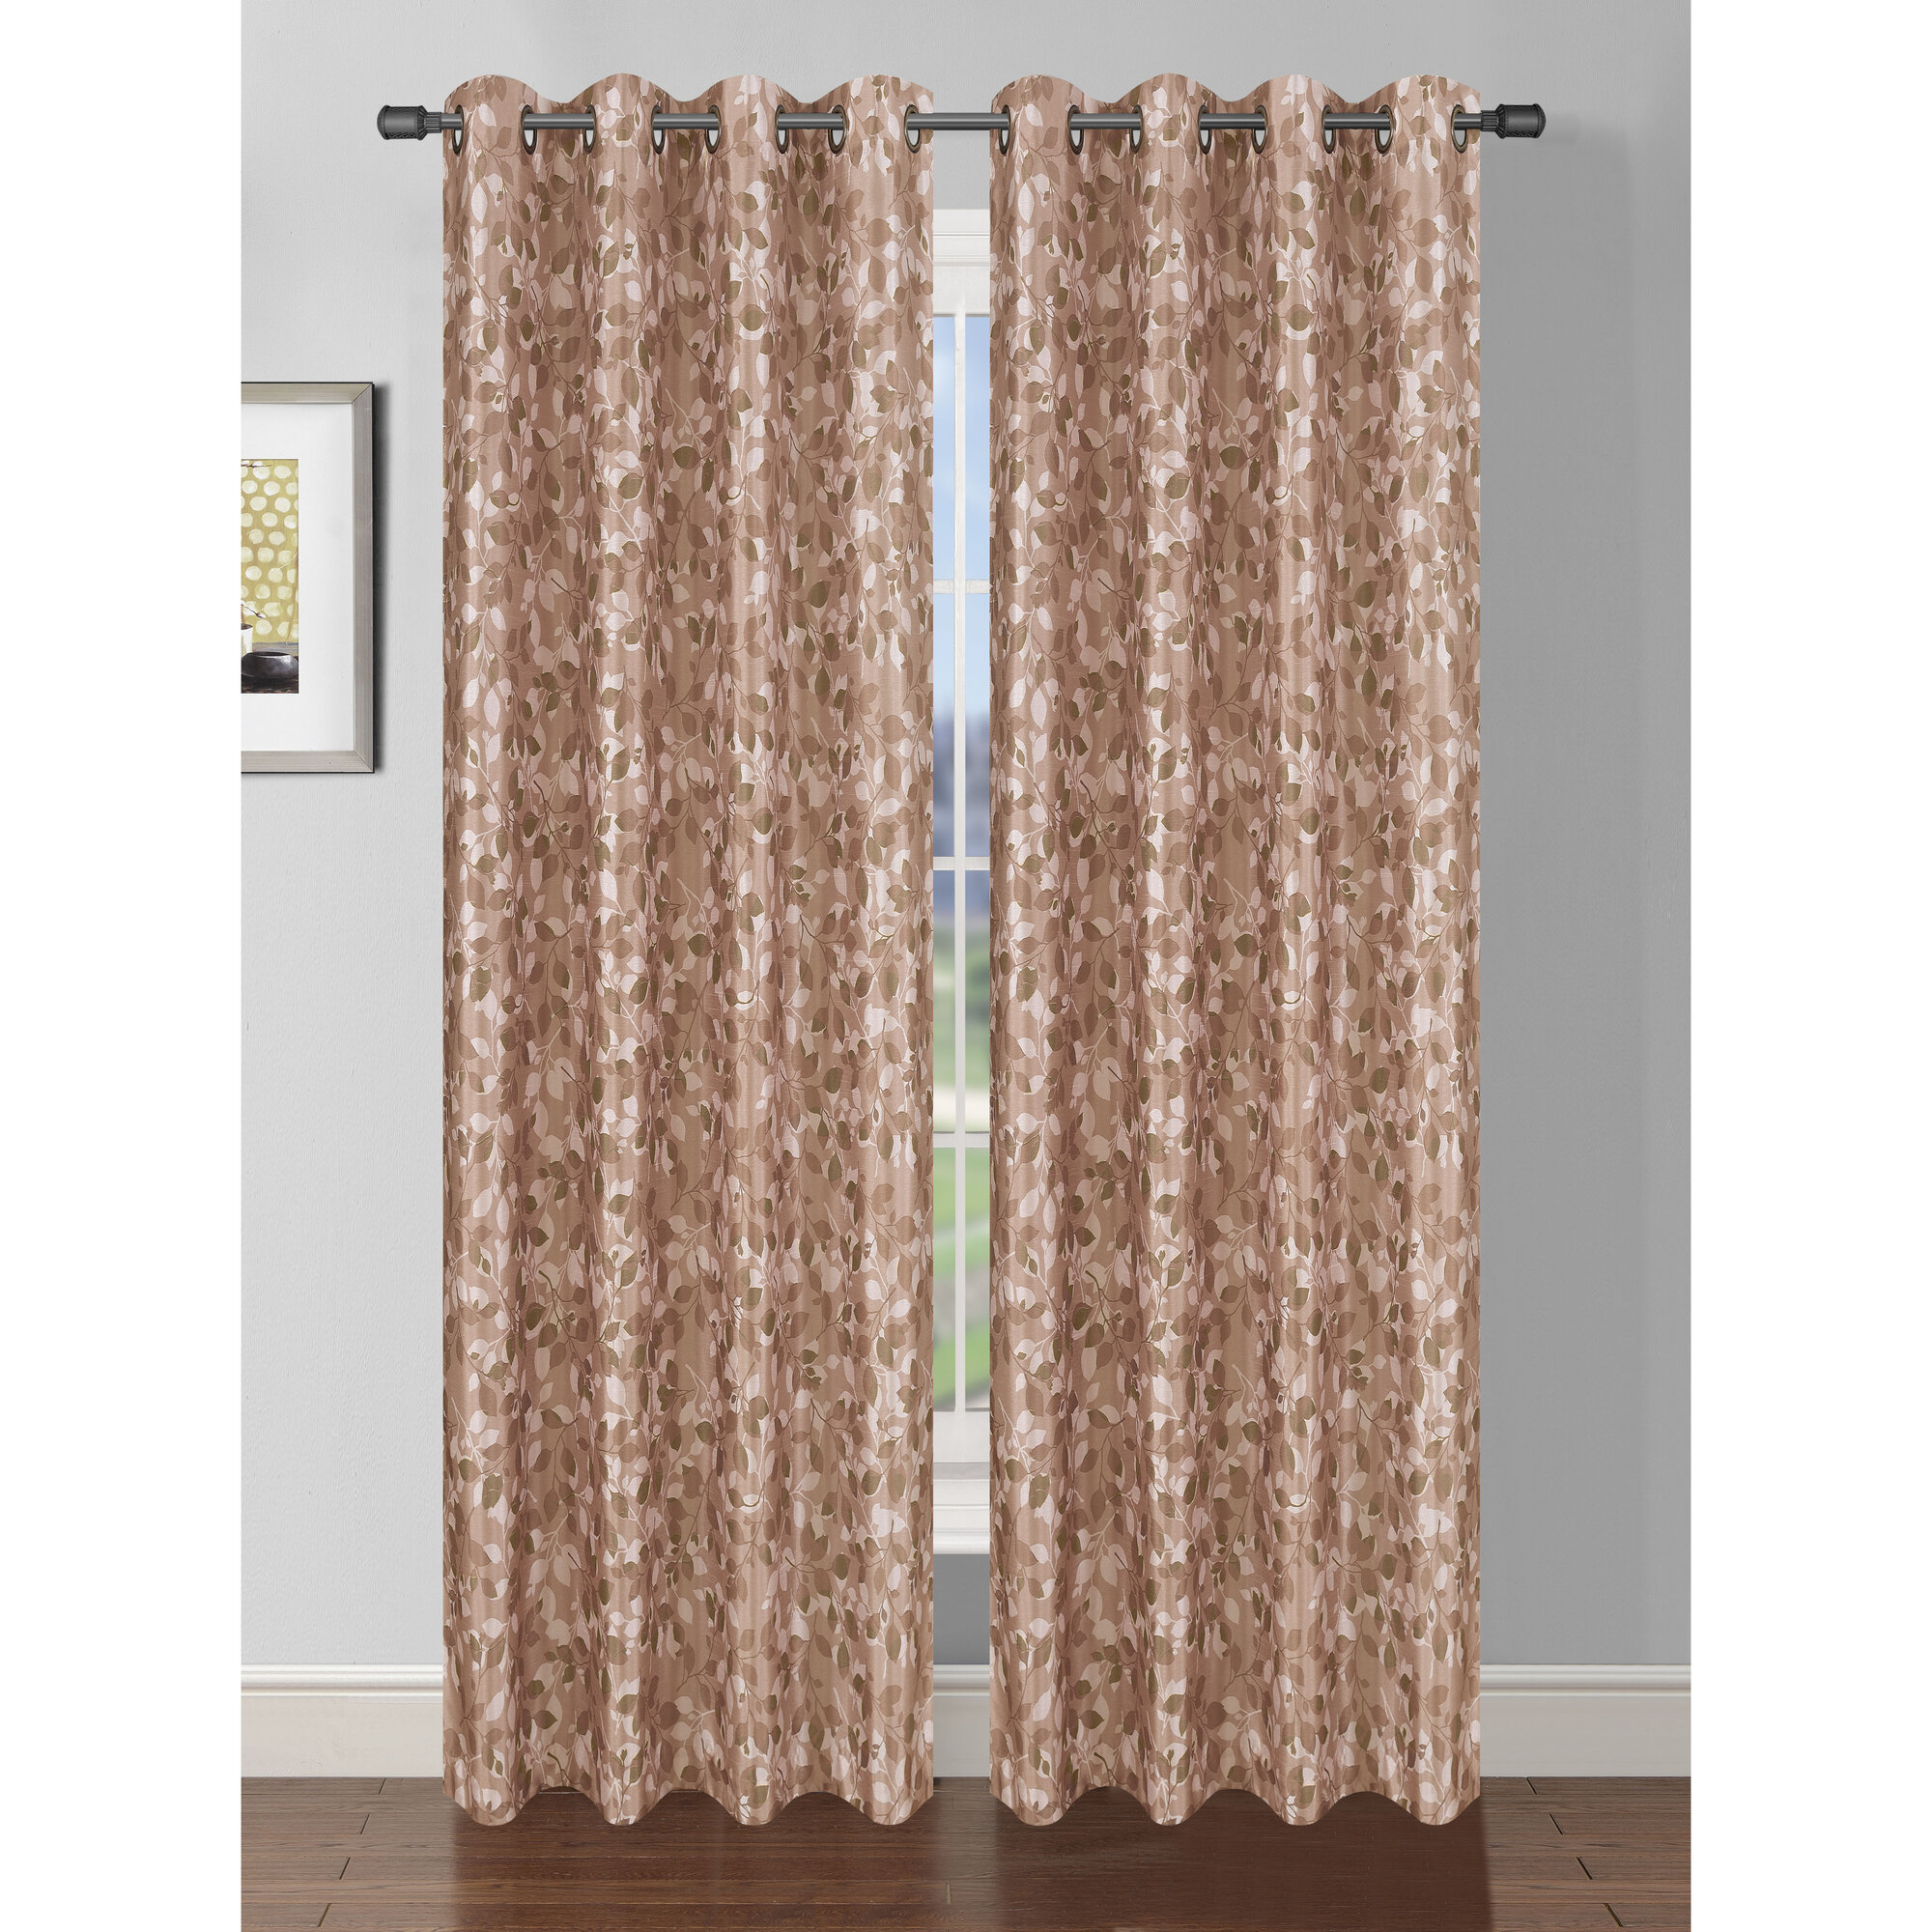 Bella Luna Pinehurst Room Darkening Extra Wide Thermal Single Curtain Panel Ebay